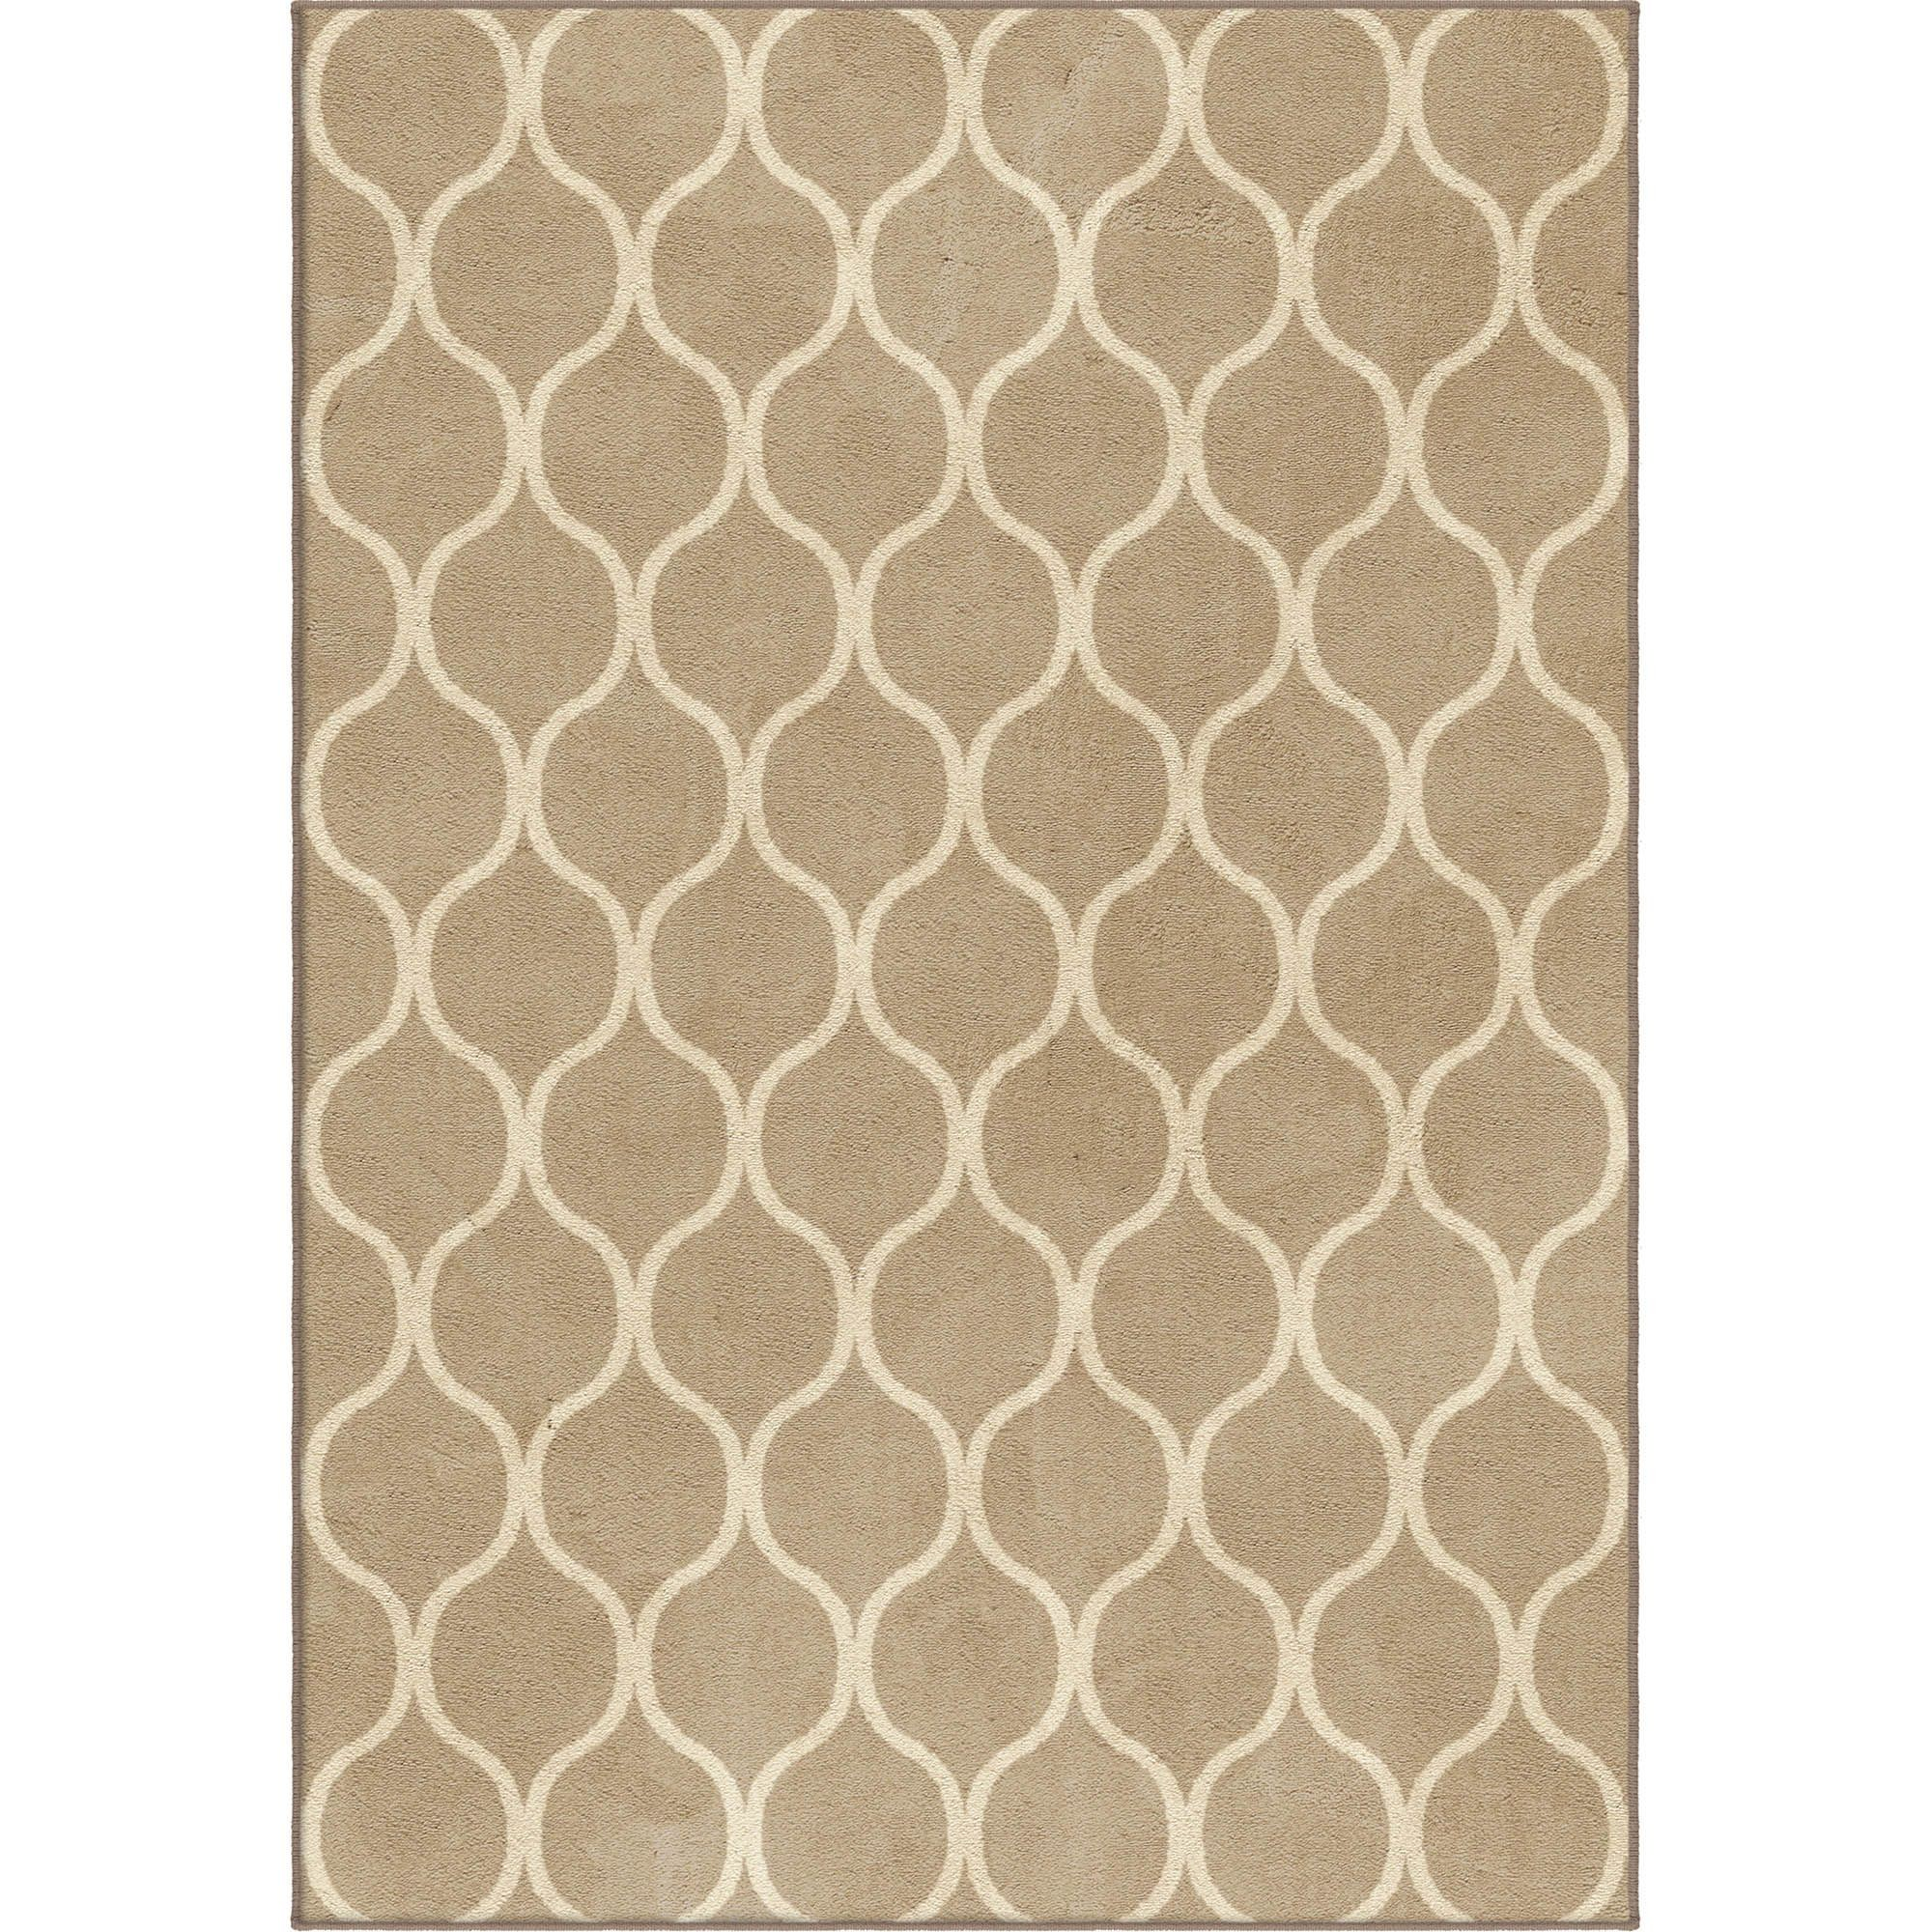 Pyrenees Adobe Large Rug From Orian 3402 8x11 Coleman